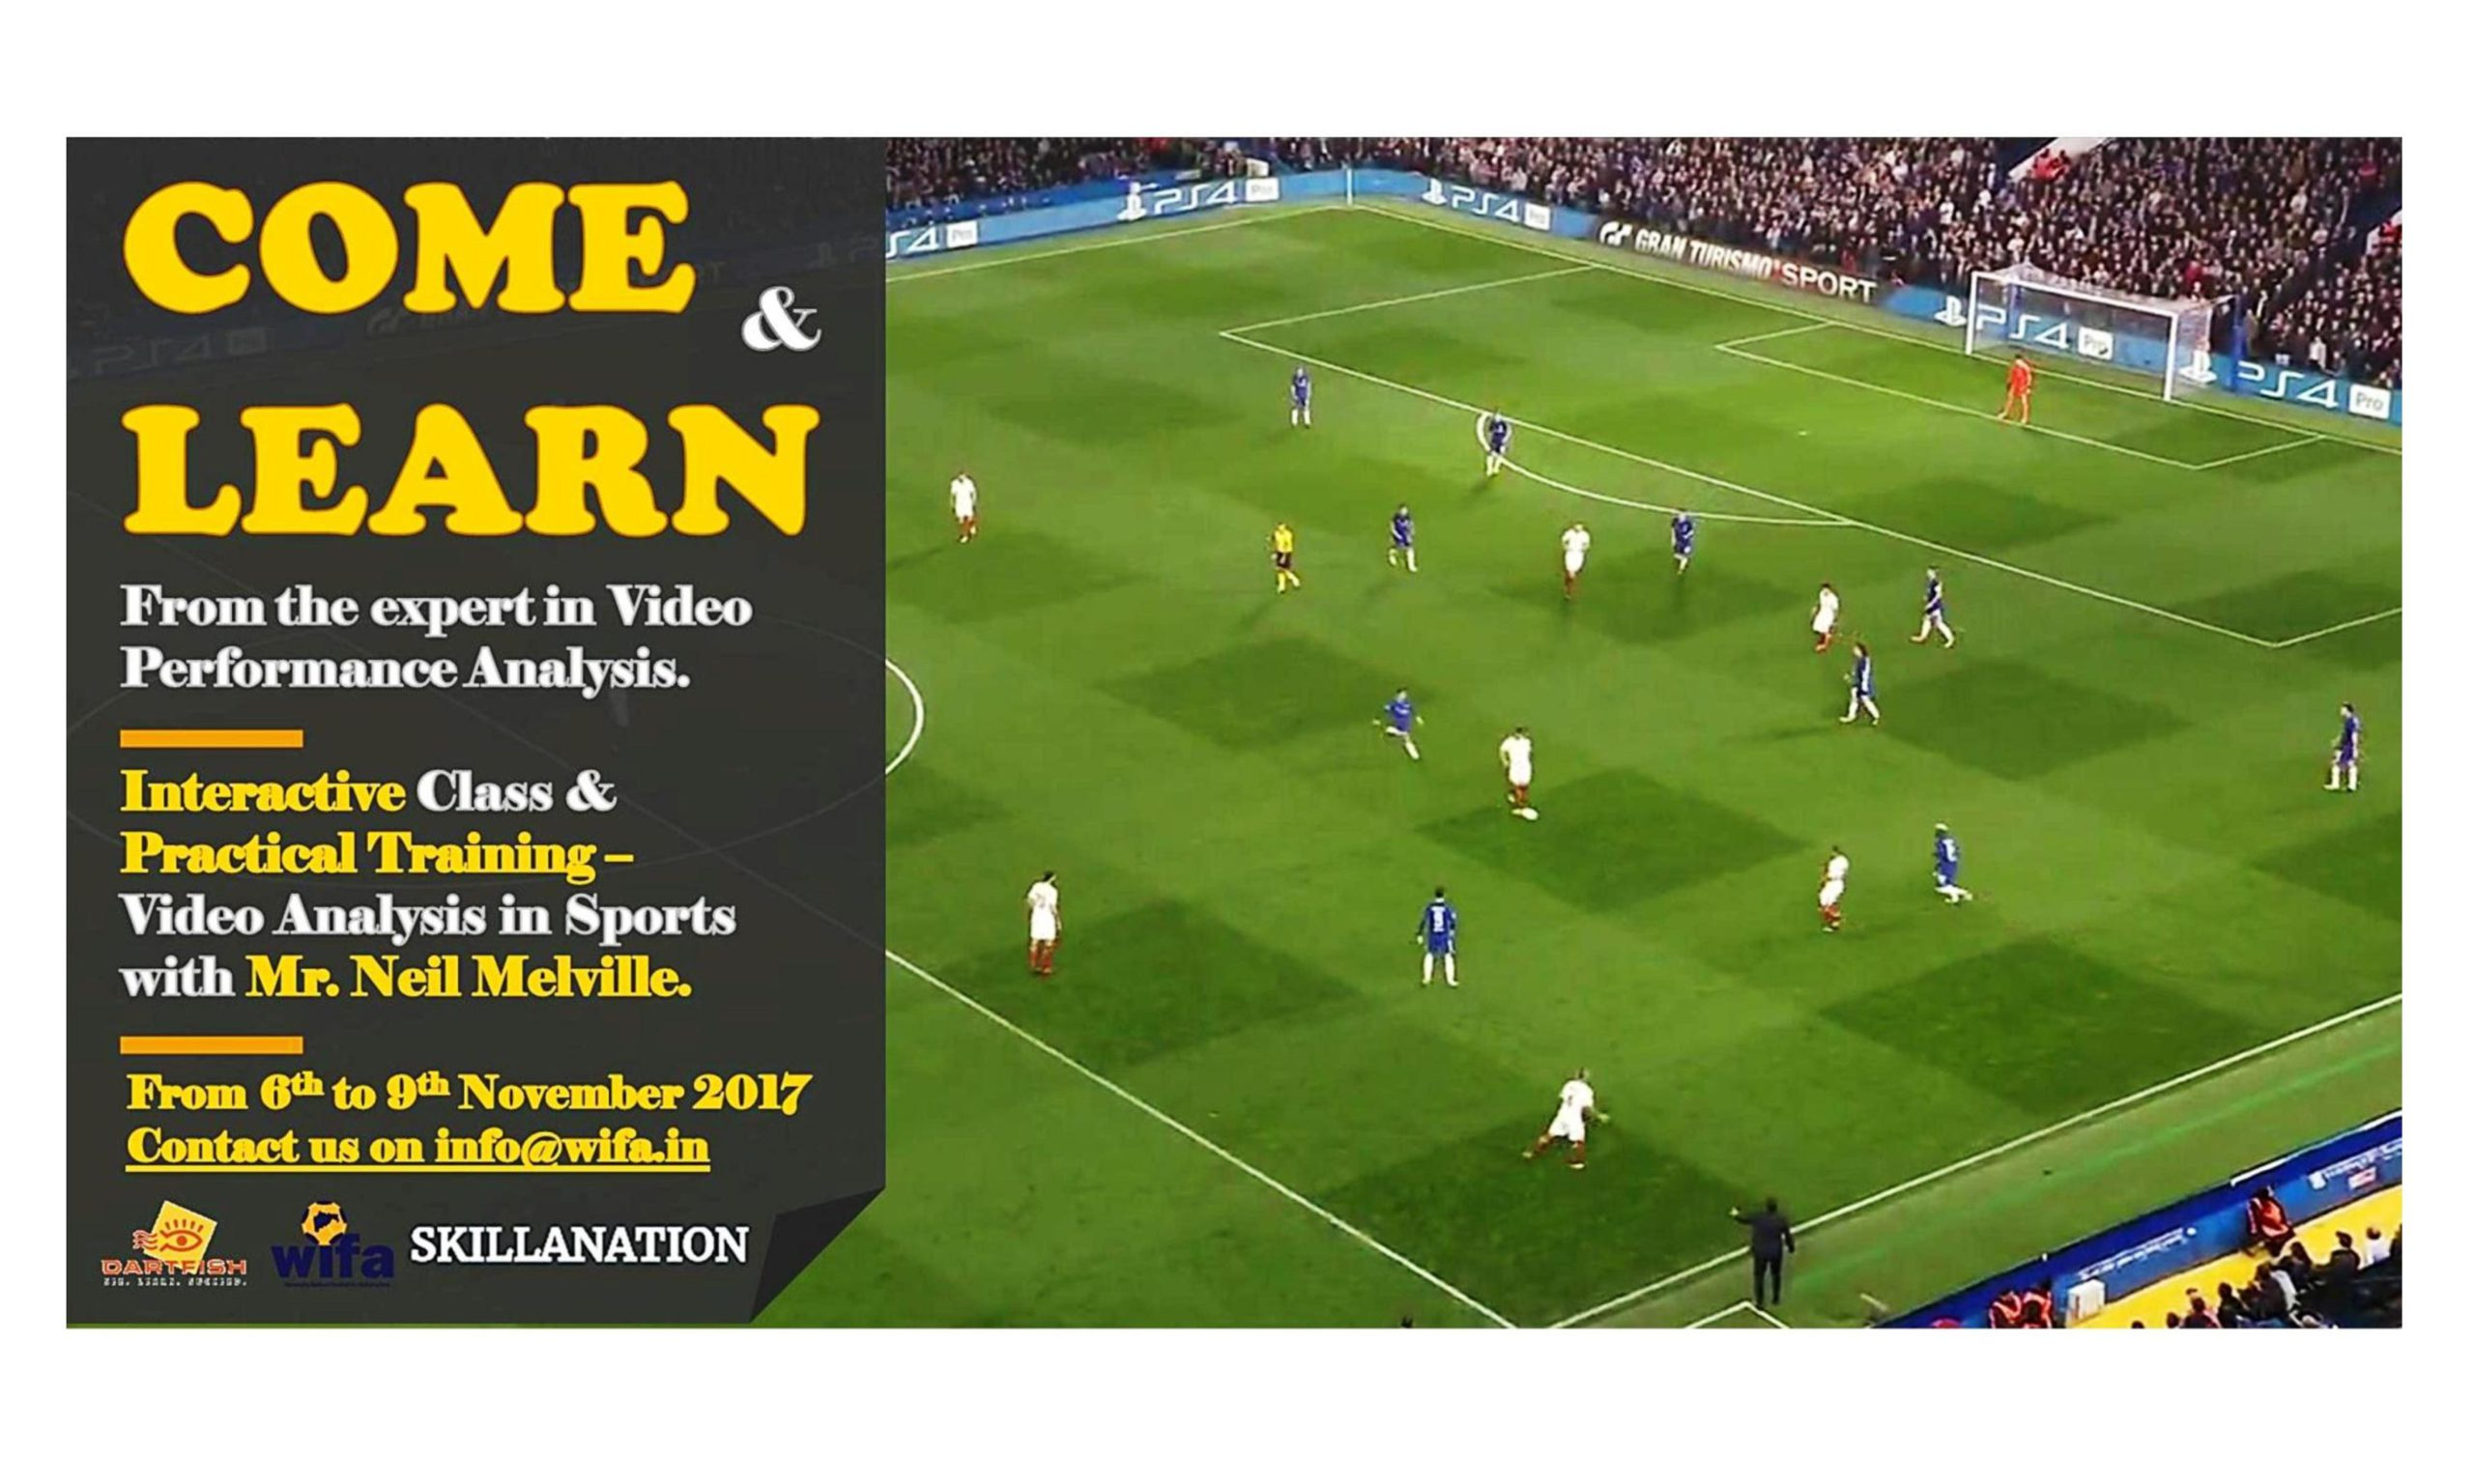 WIFA's 1st PERFORMANCE VIDEO ANALYSIS CERTIFICATION COURSE